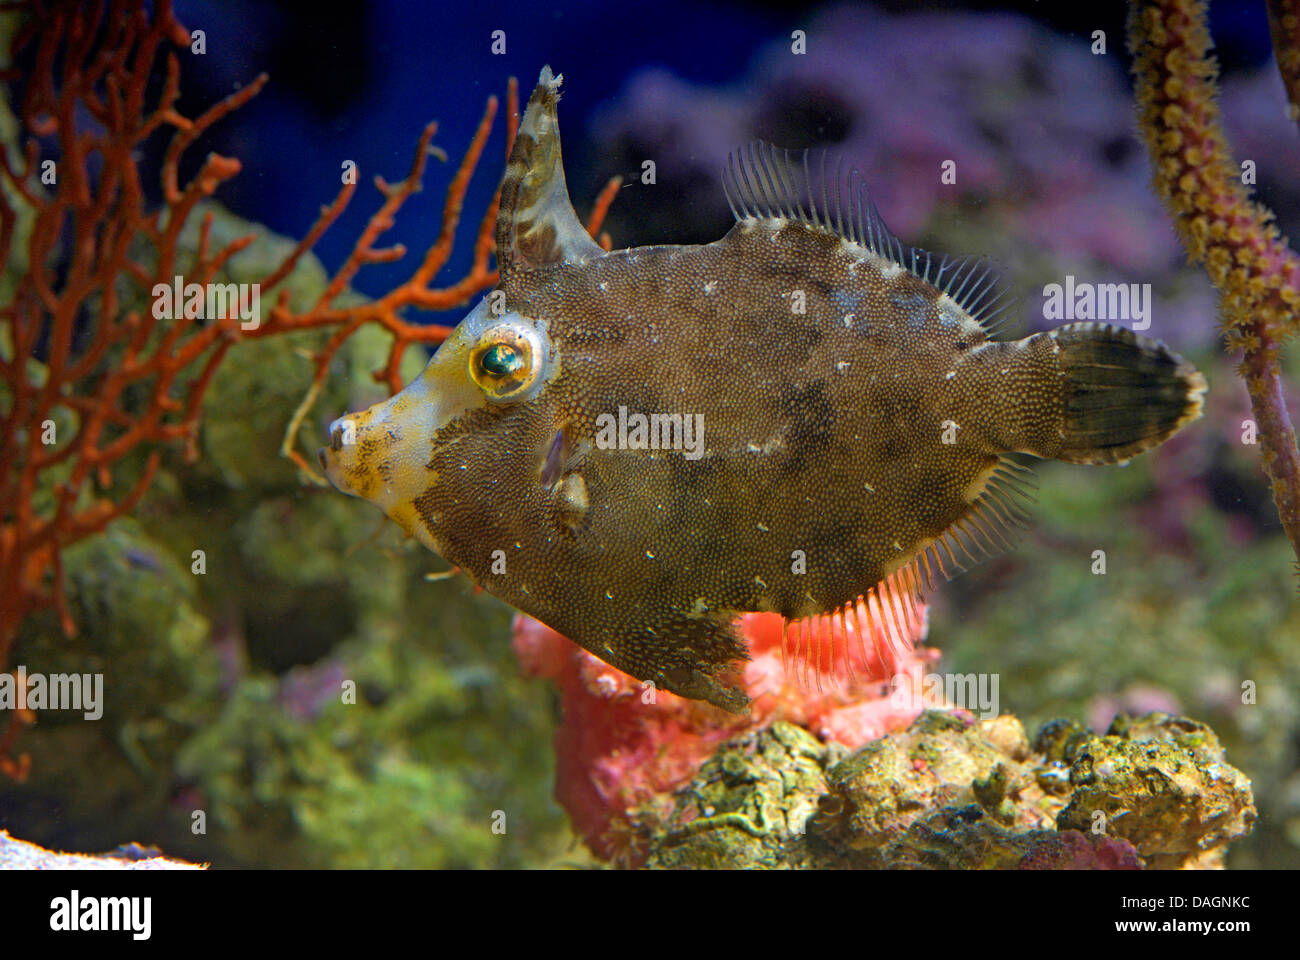 Bristle-tail file-fish (Acreichthys tomentosus), in front of corals - Stock Image